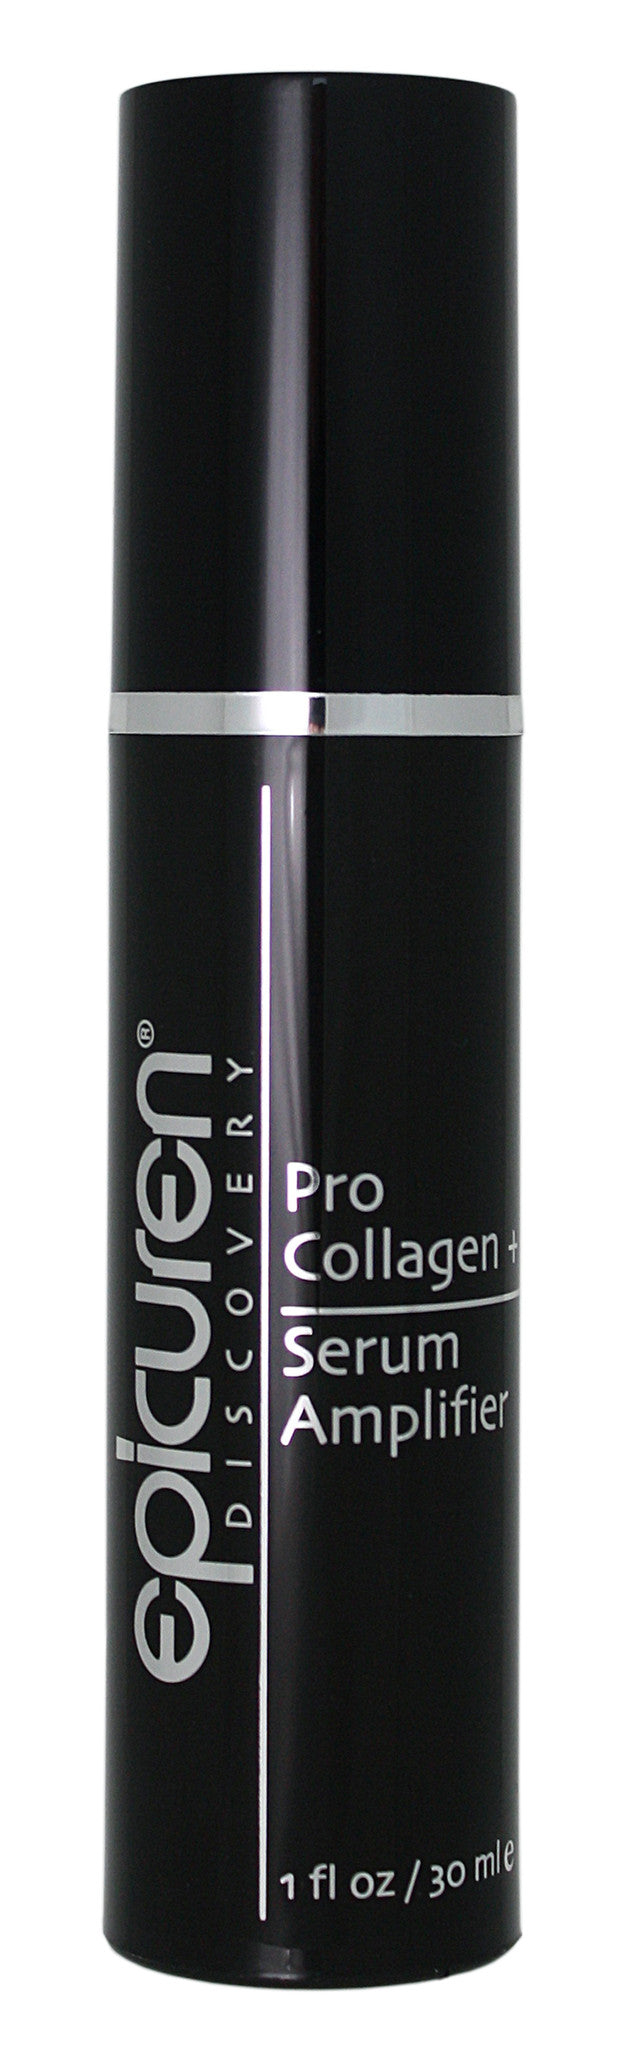 Pro Collagen + Serum Amplifier